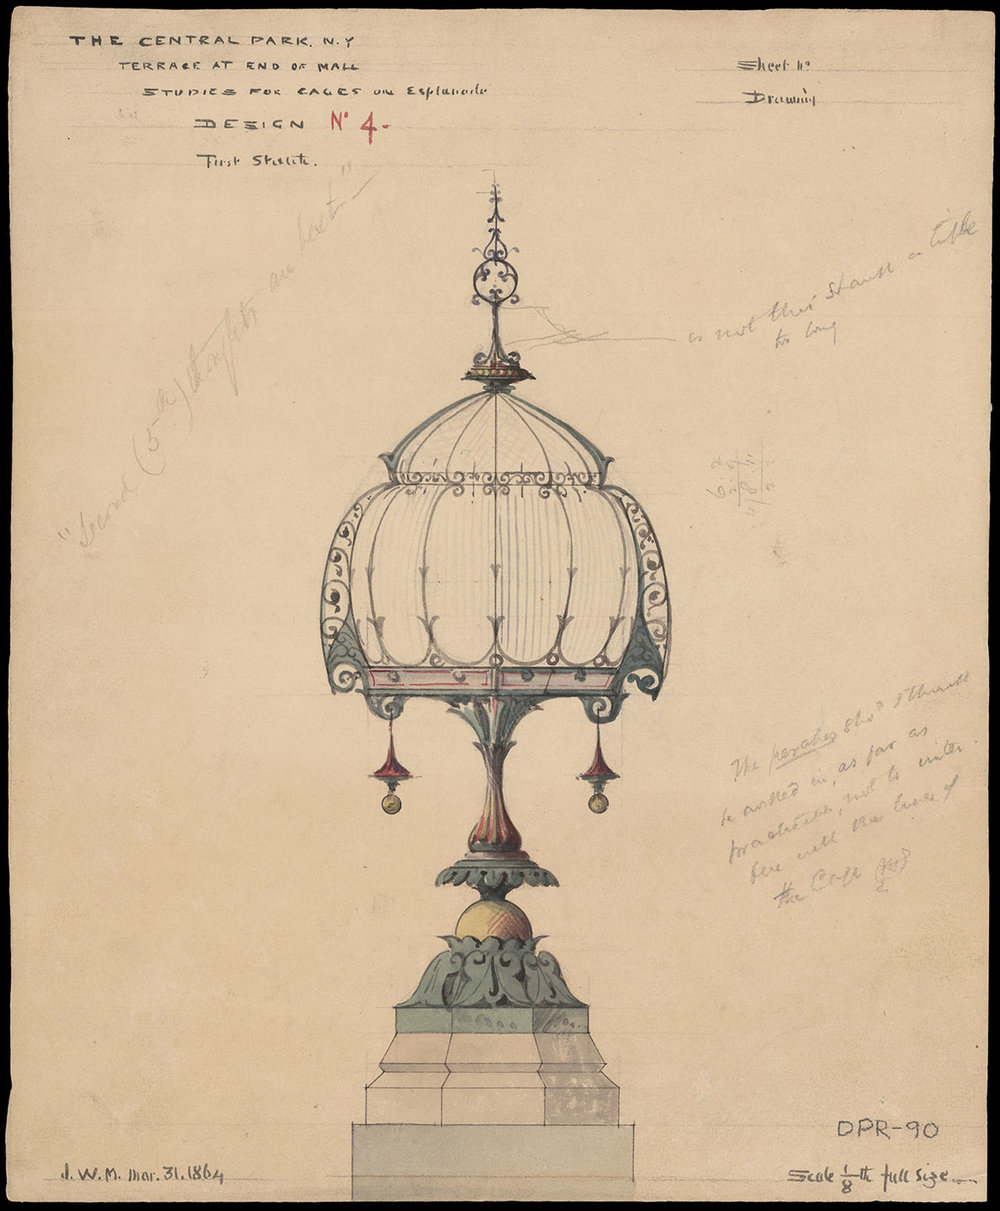 Jacob Wrey Mould, Central Park drawing, 1864. Bethesda Terrace and Mall, Studies for Cages on Esplanade. Design No. 4: First Sketch. Department of Parks and Recreation collection, New York City Municipal Archives.